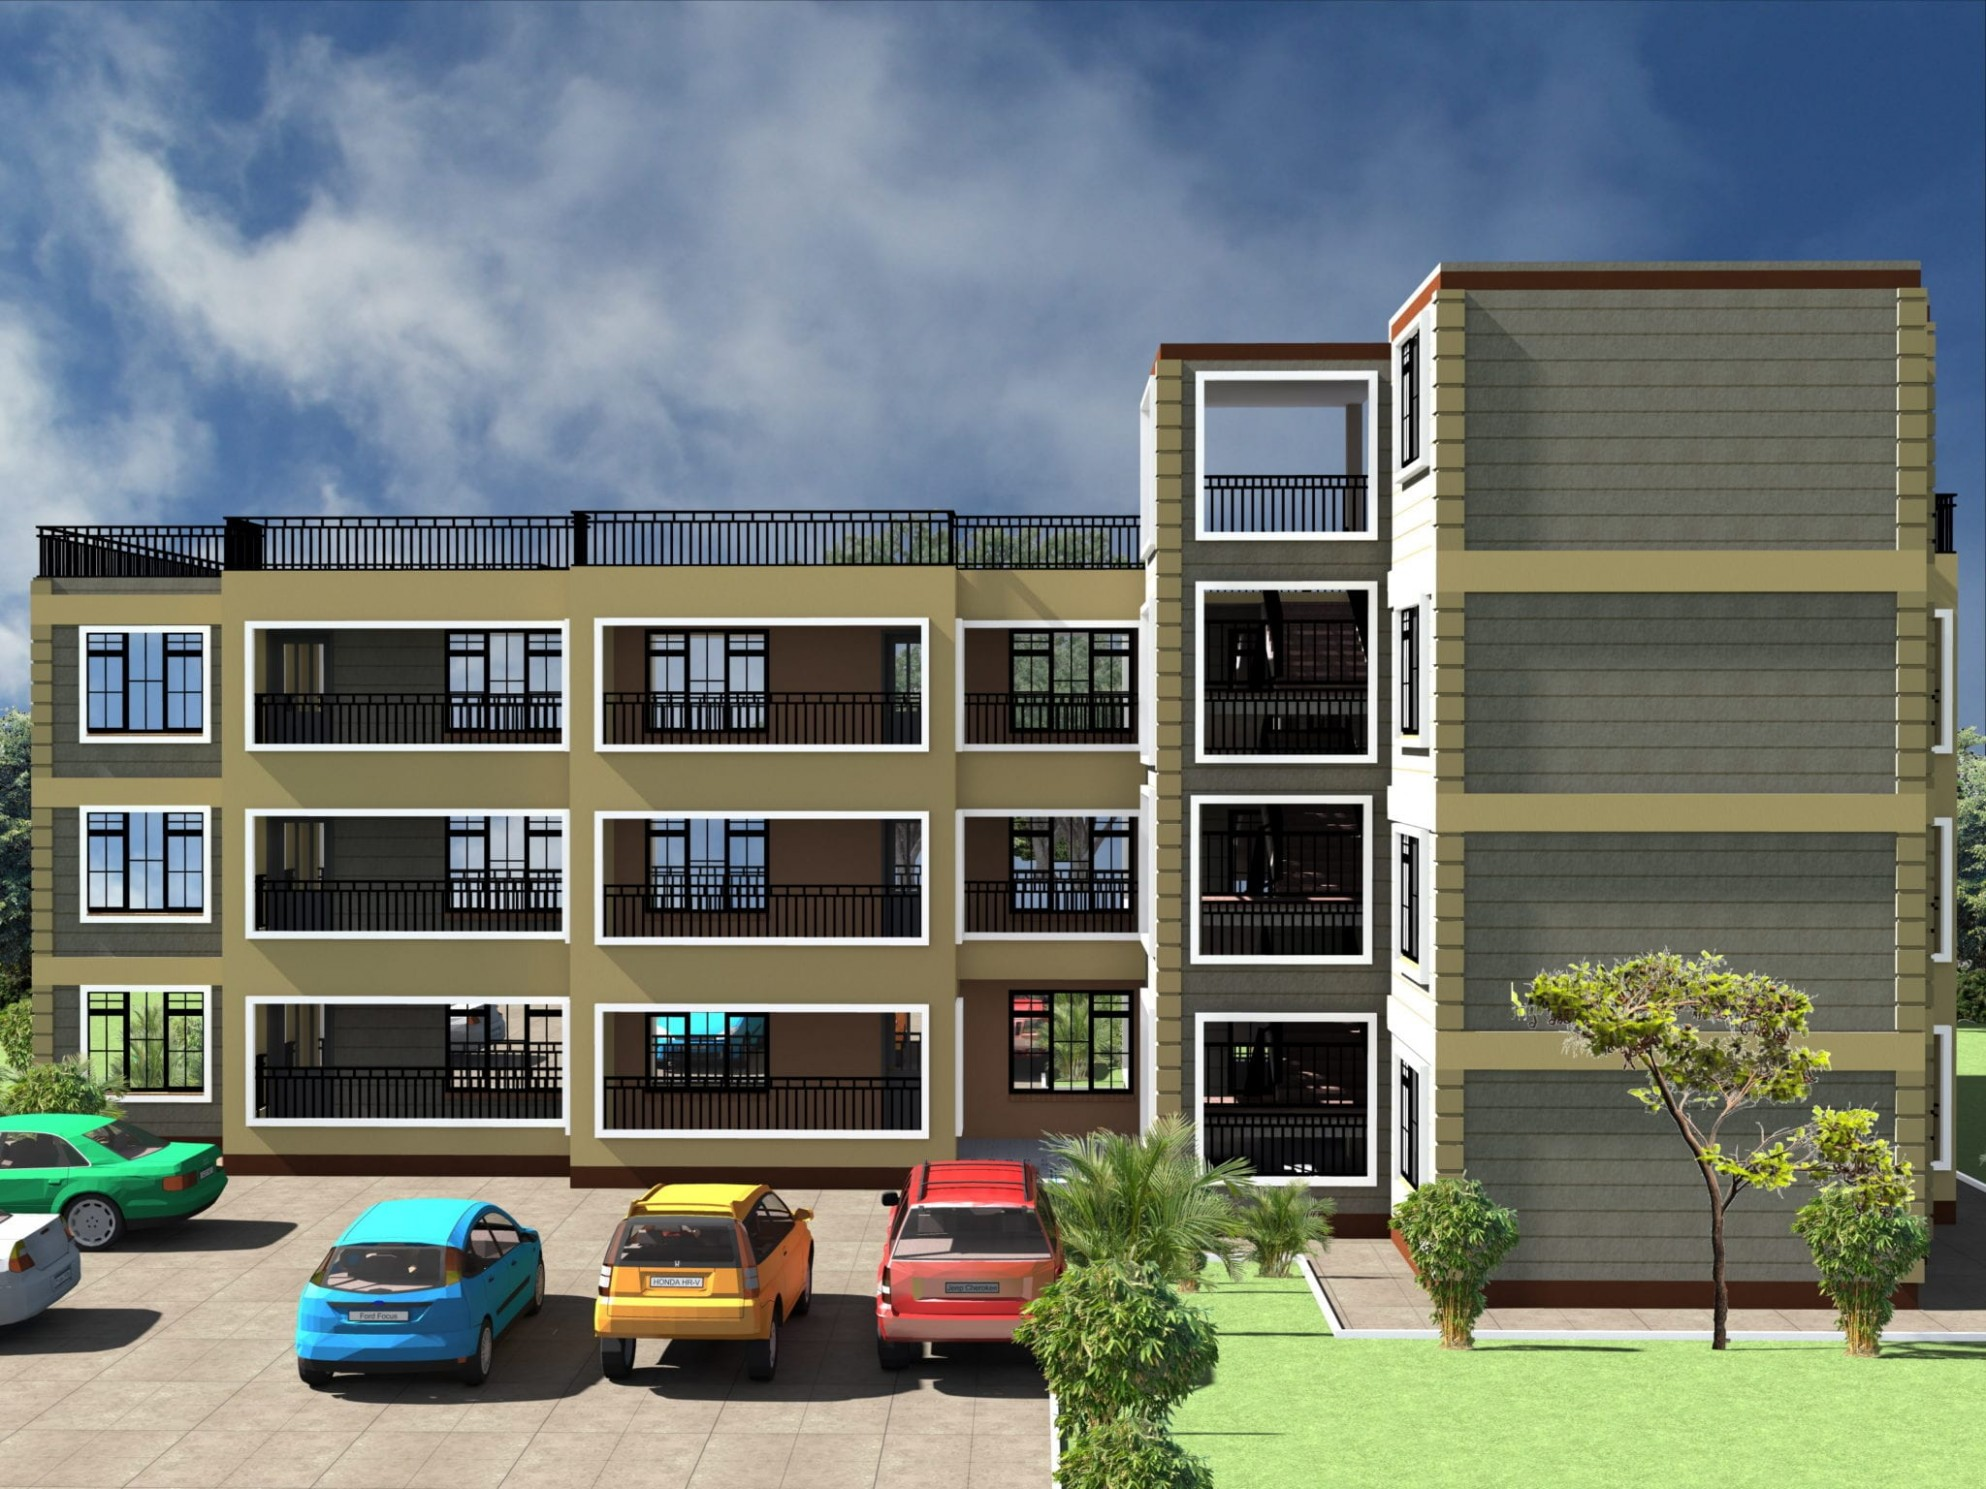 Apartment Design Plans 10 & 10 Bedrooms on 10*100 plot  HPD Consult - Apartment Design Kenya